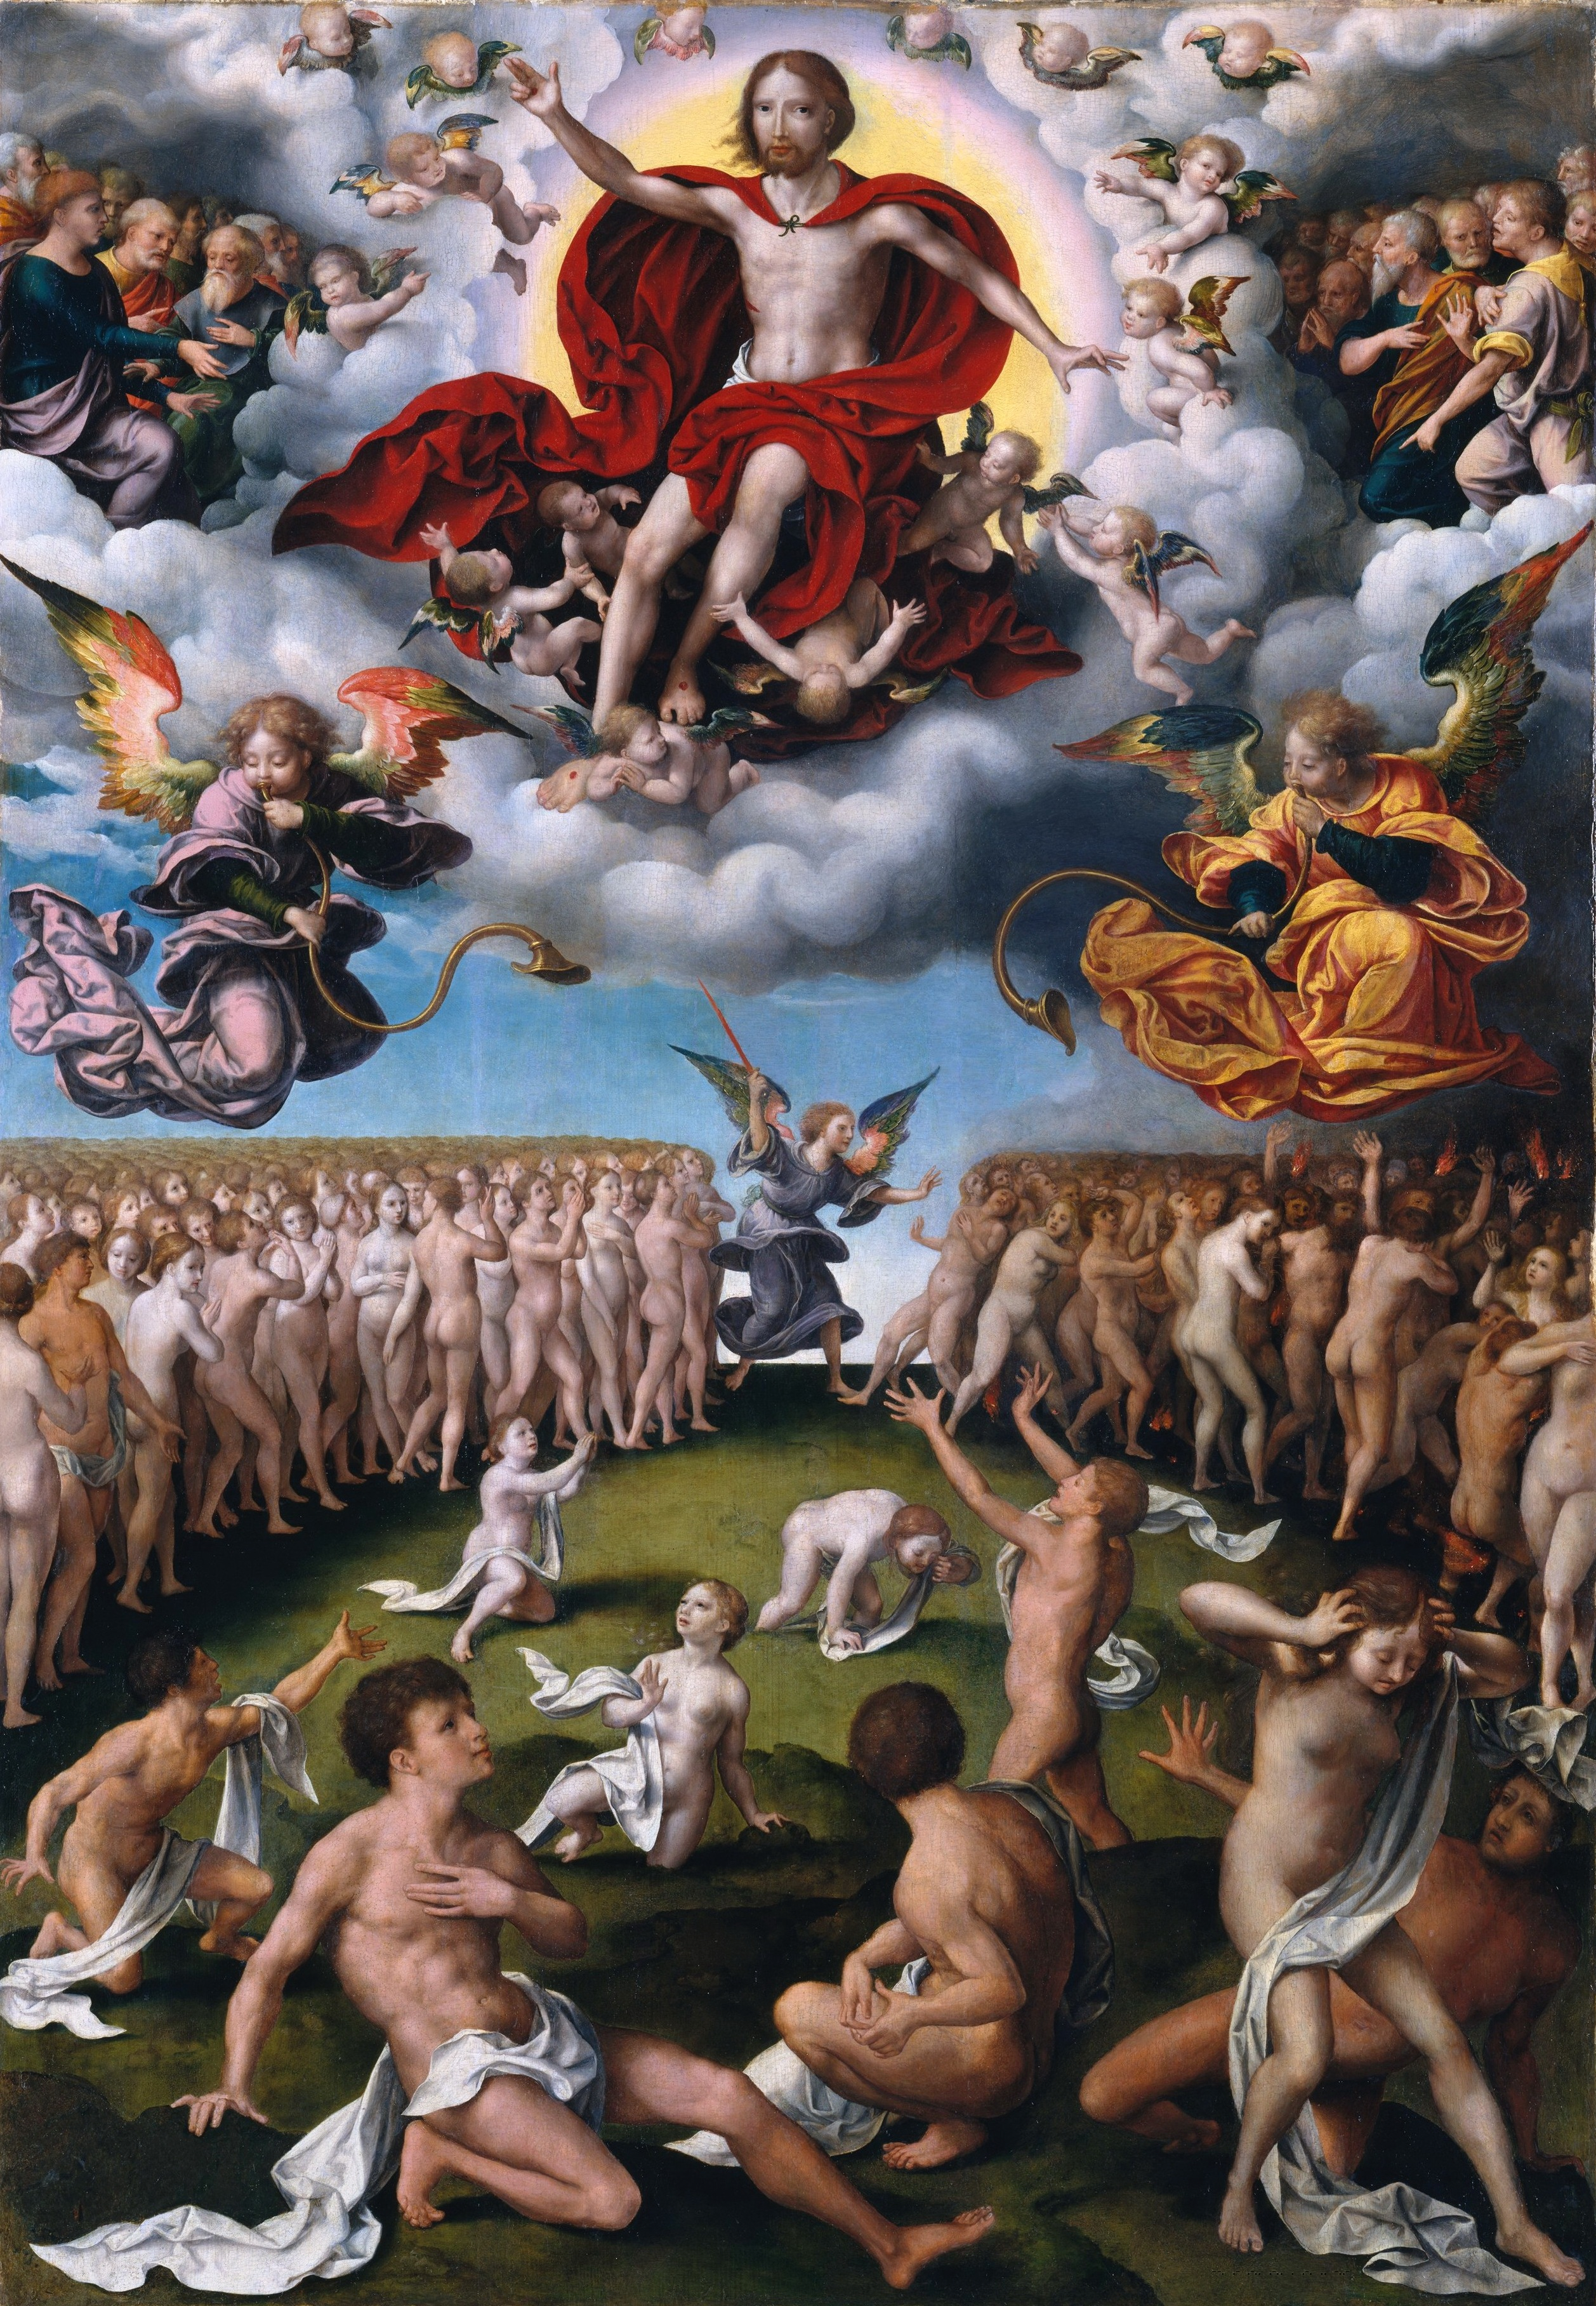 The Last Judgement (about 1520-1525) (123.8 x 86.4) (New York, Metropolitan)